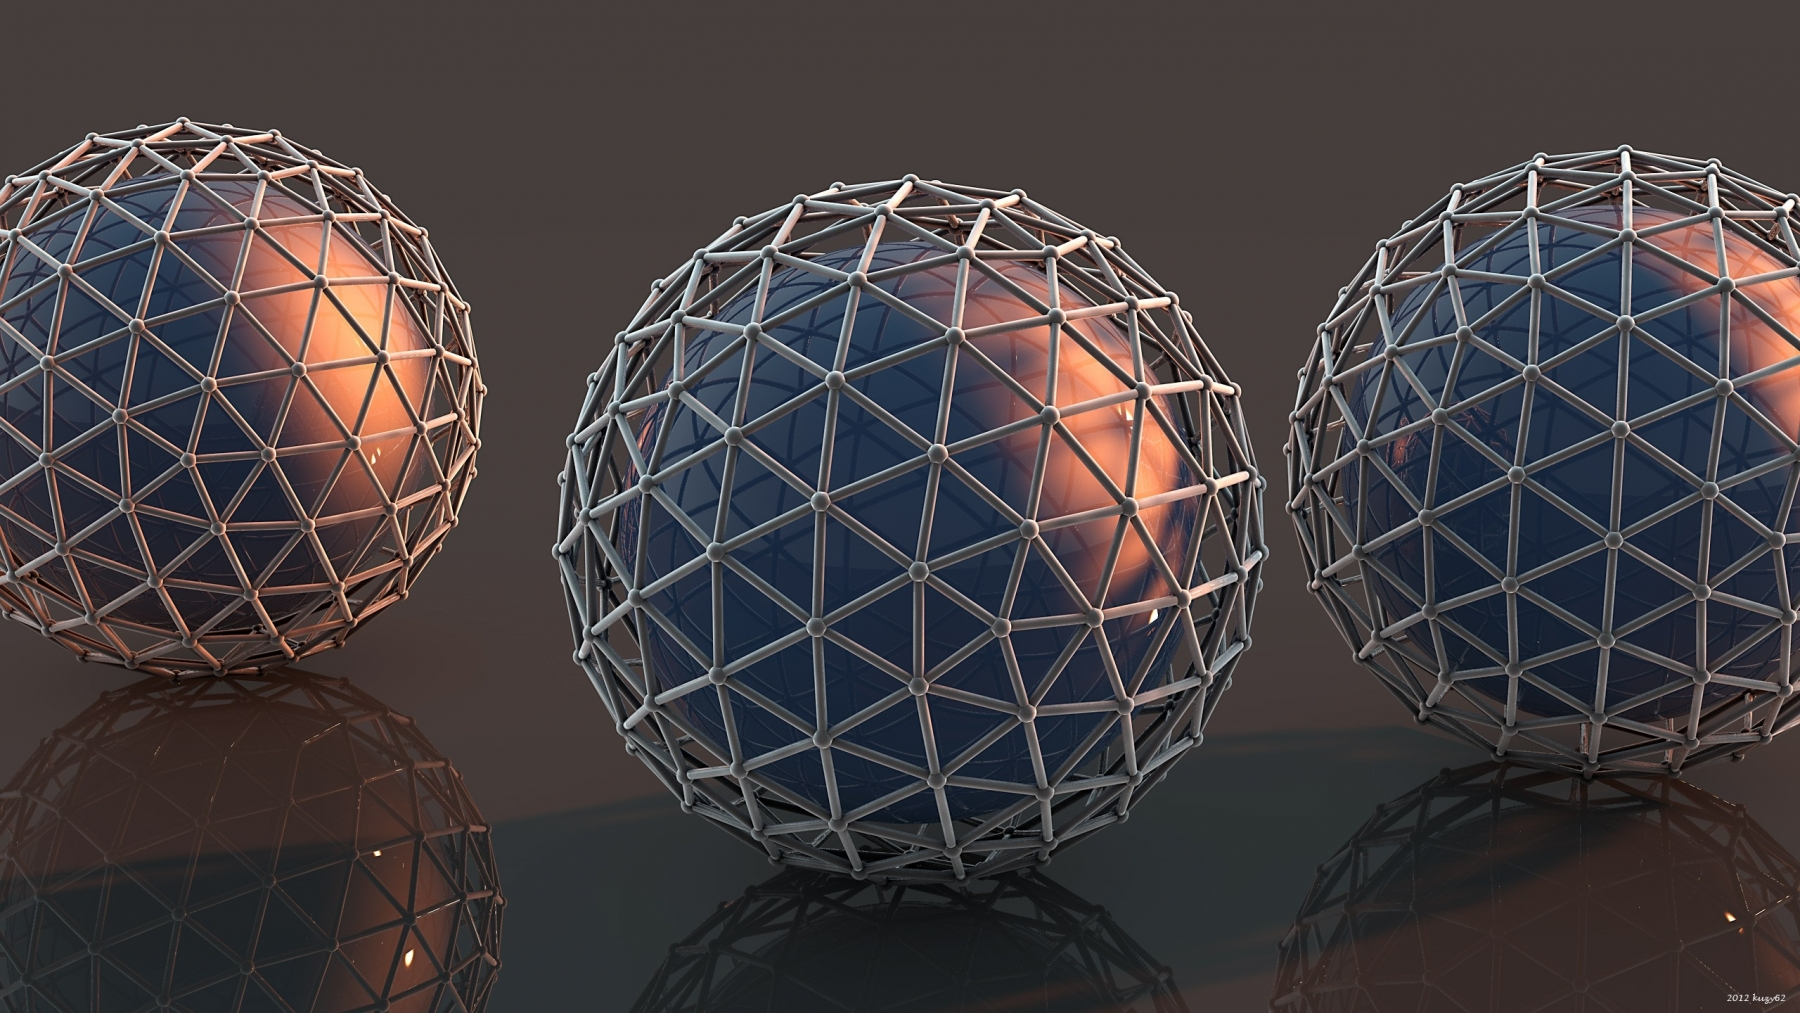 balls_mesh_surface_metal_47713_2560x1440